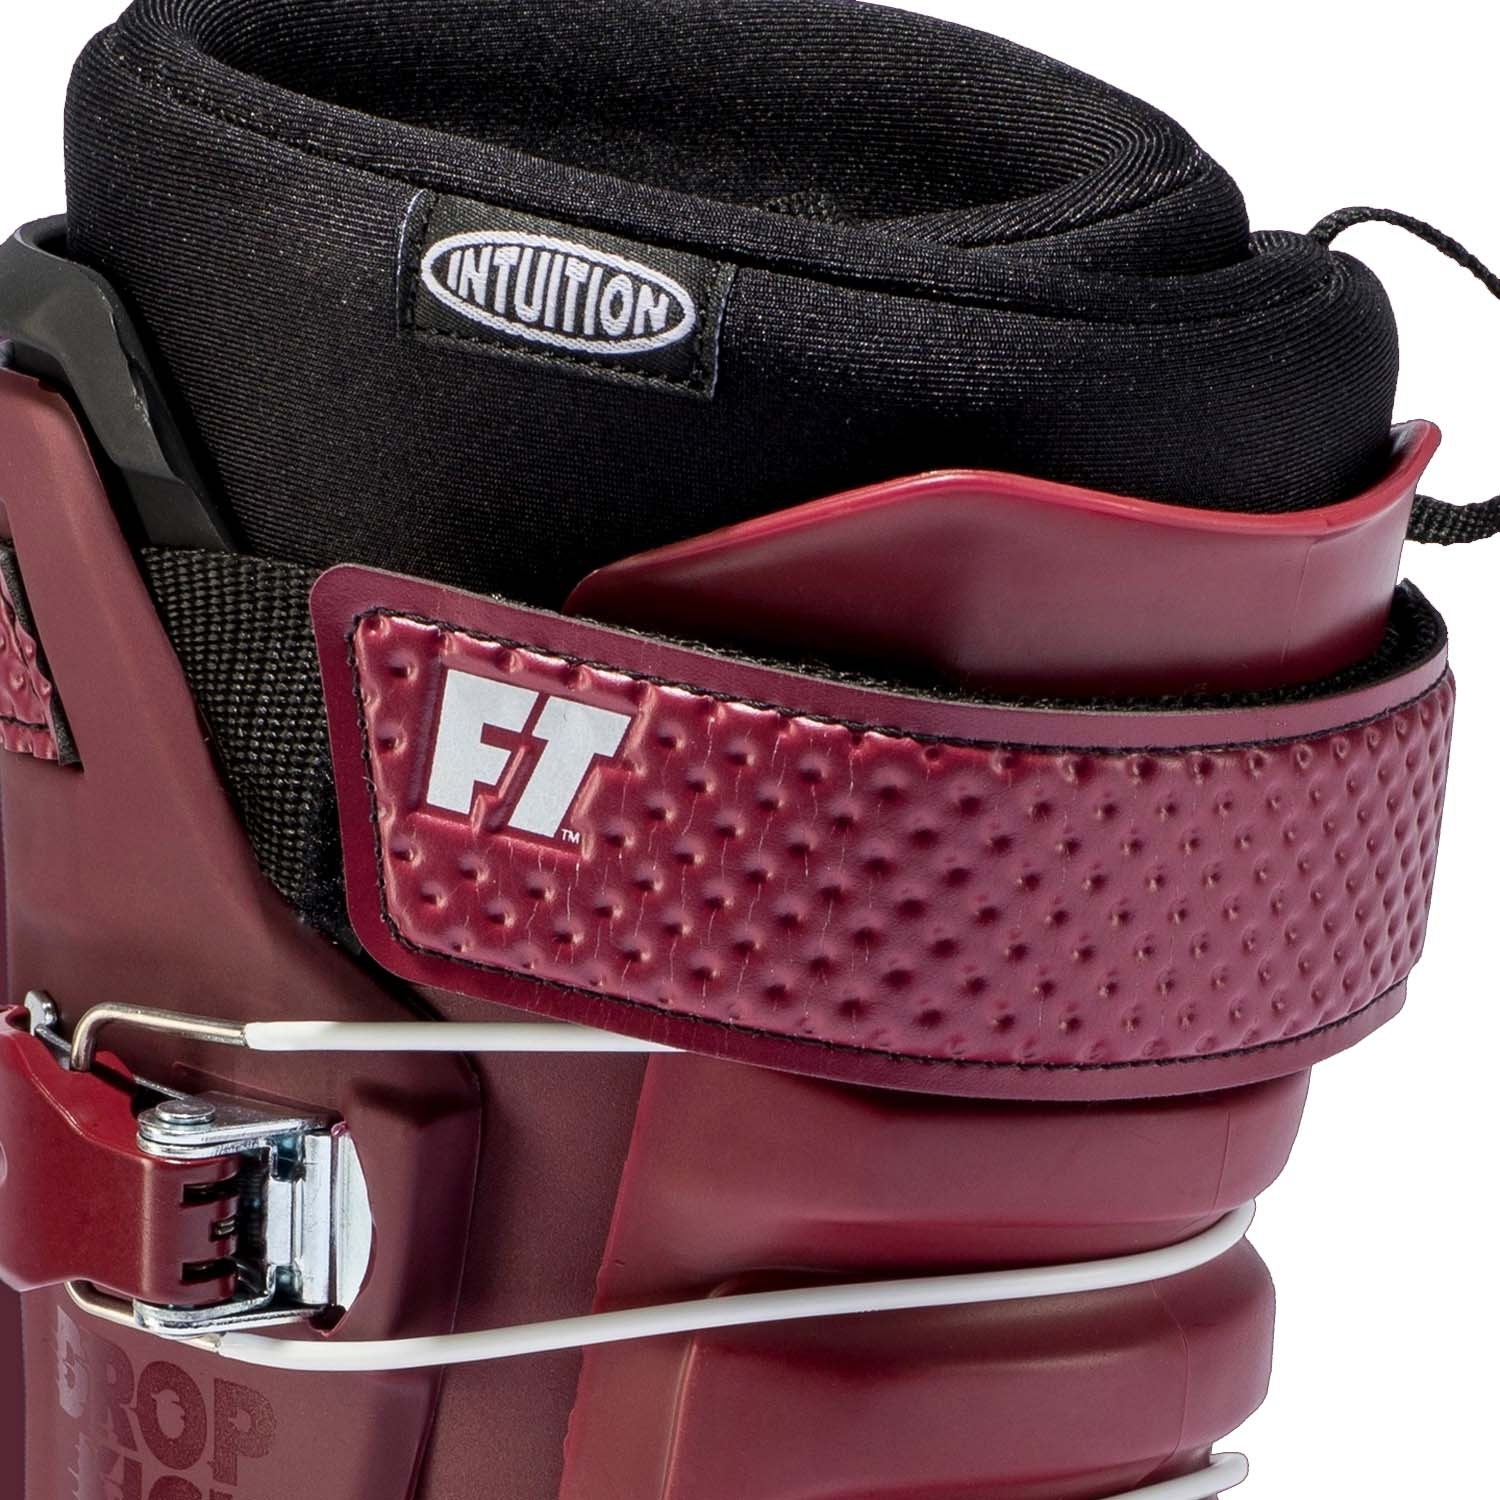 Full Tilt Drop Kick Pro Ski Boot 2020